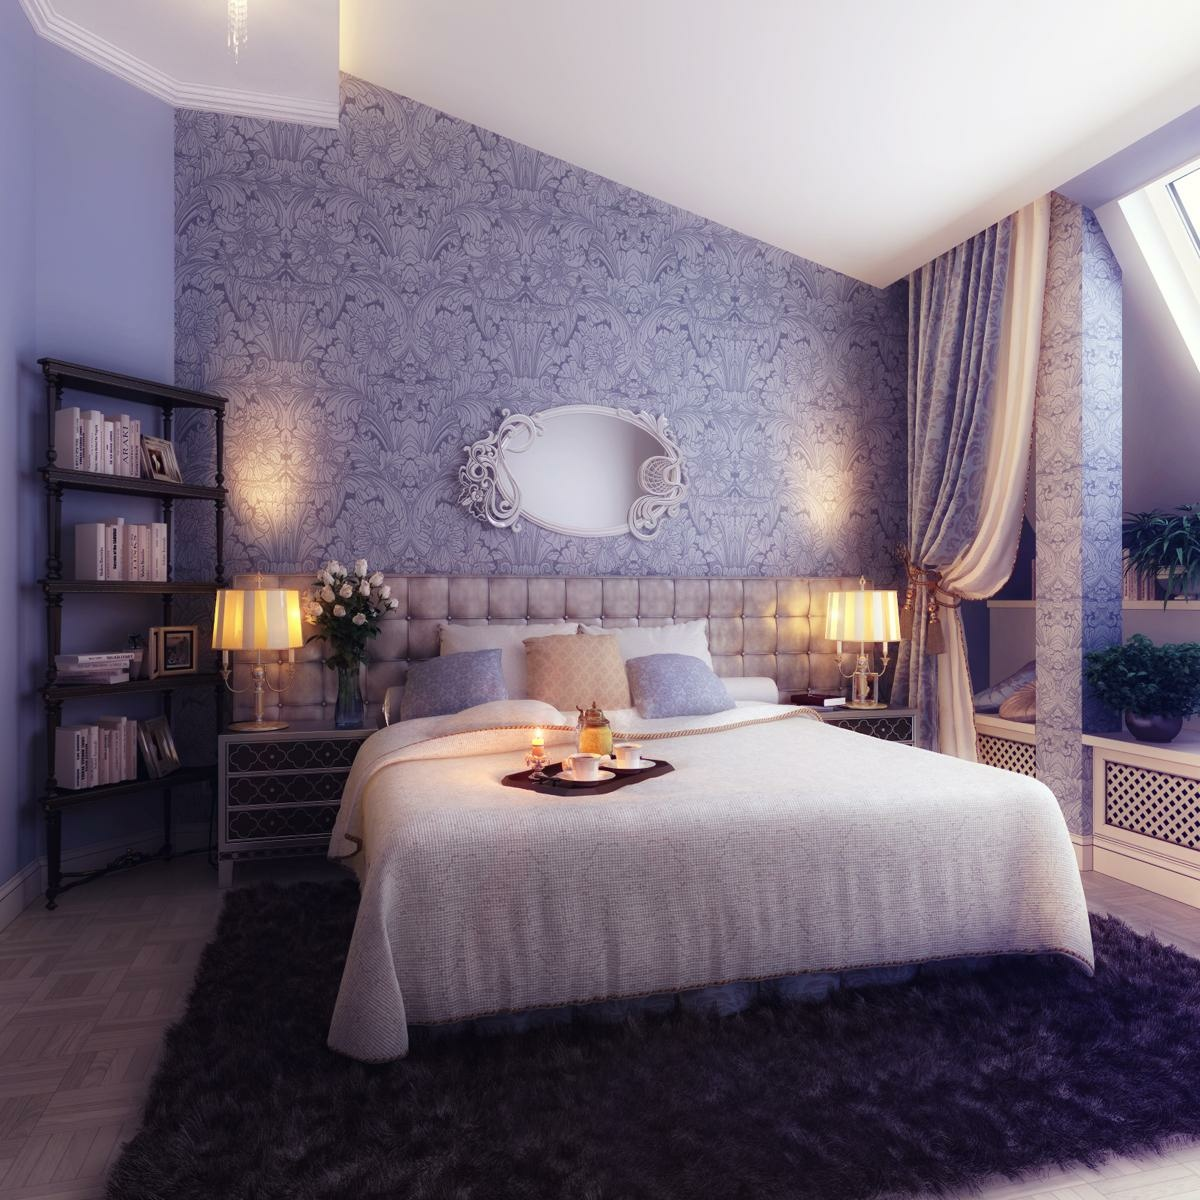 Romantic Bedroom Decorations Amazing With Blue and Cream Bedroom Decor Picture